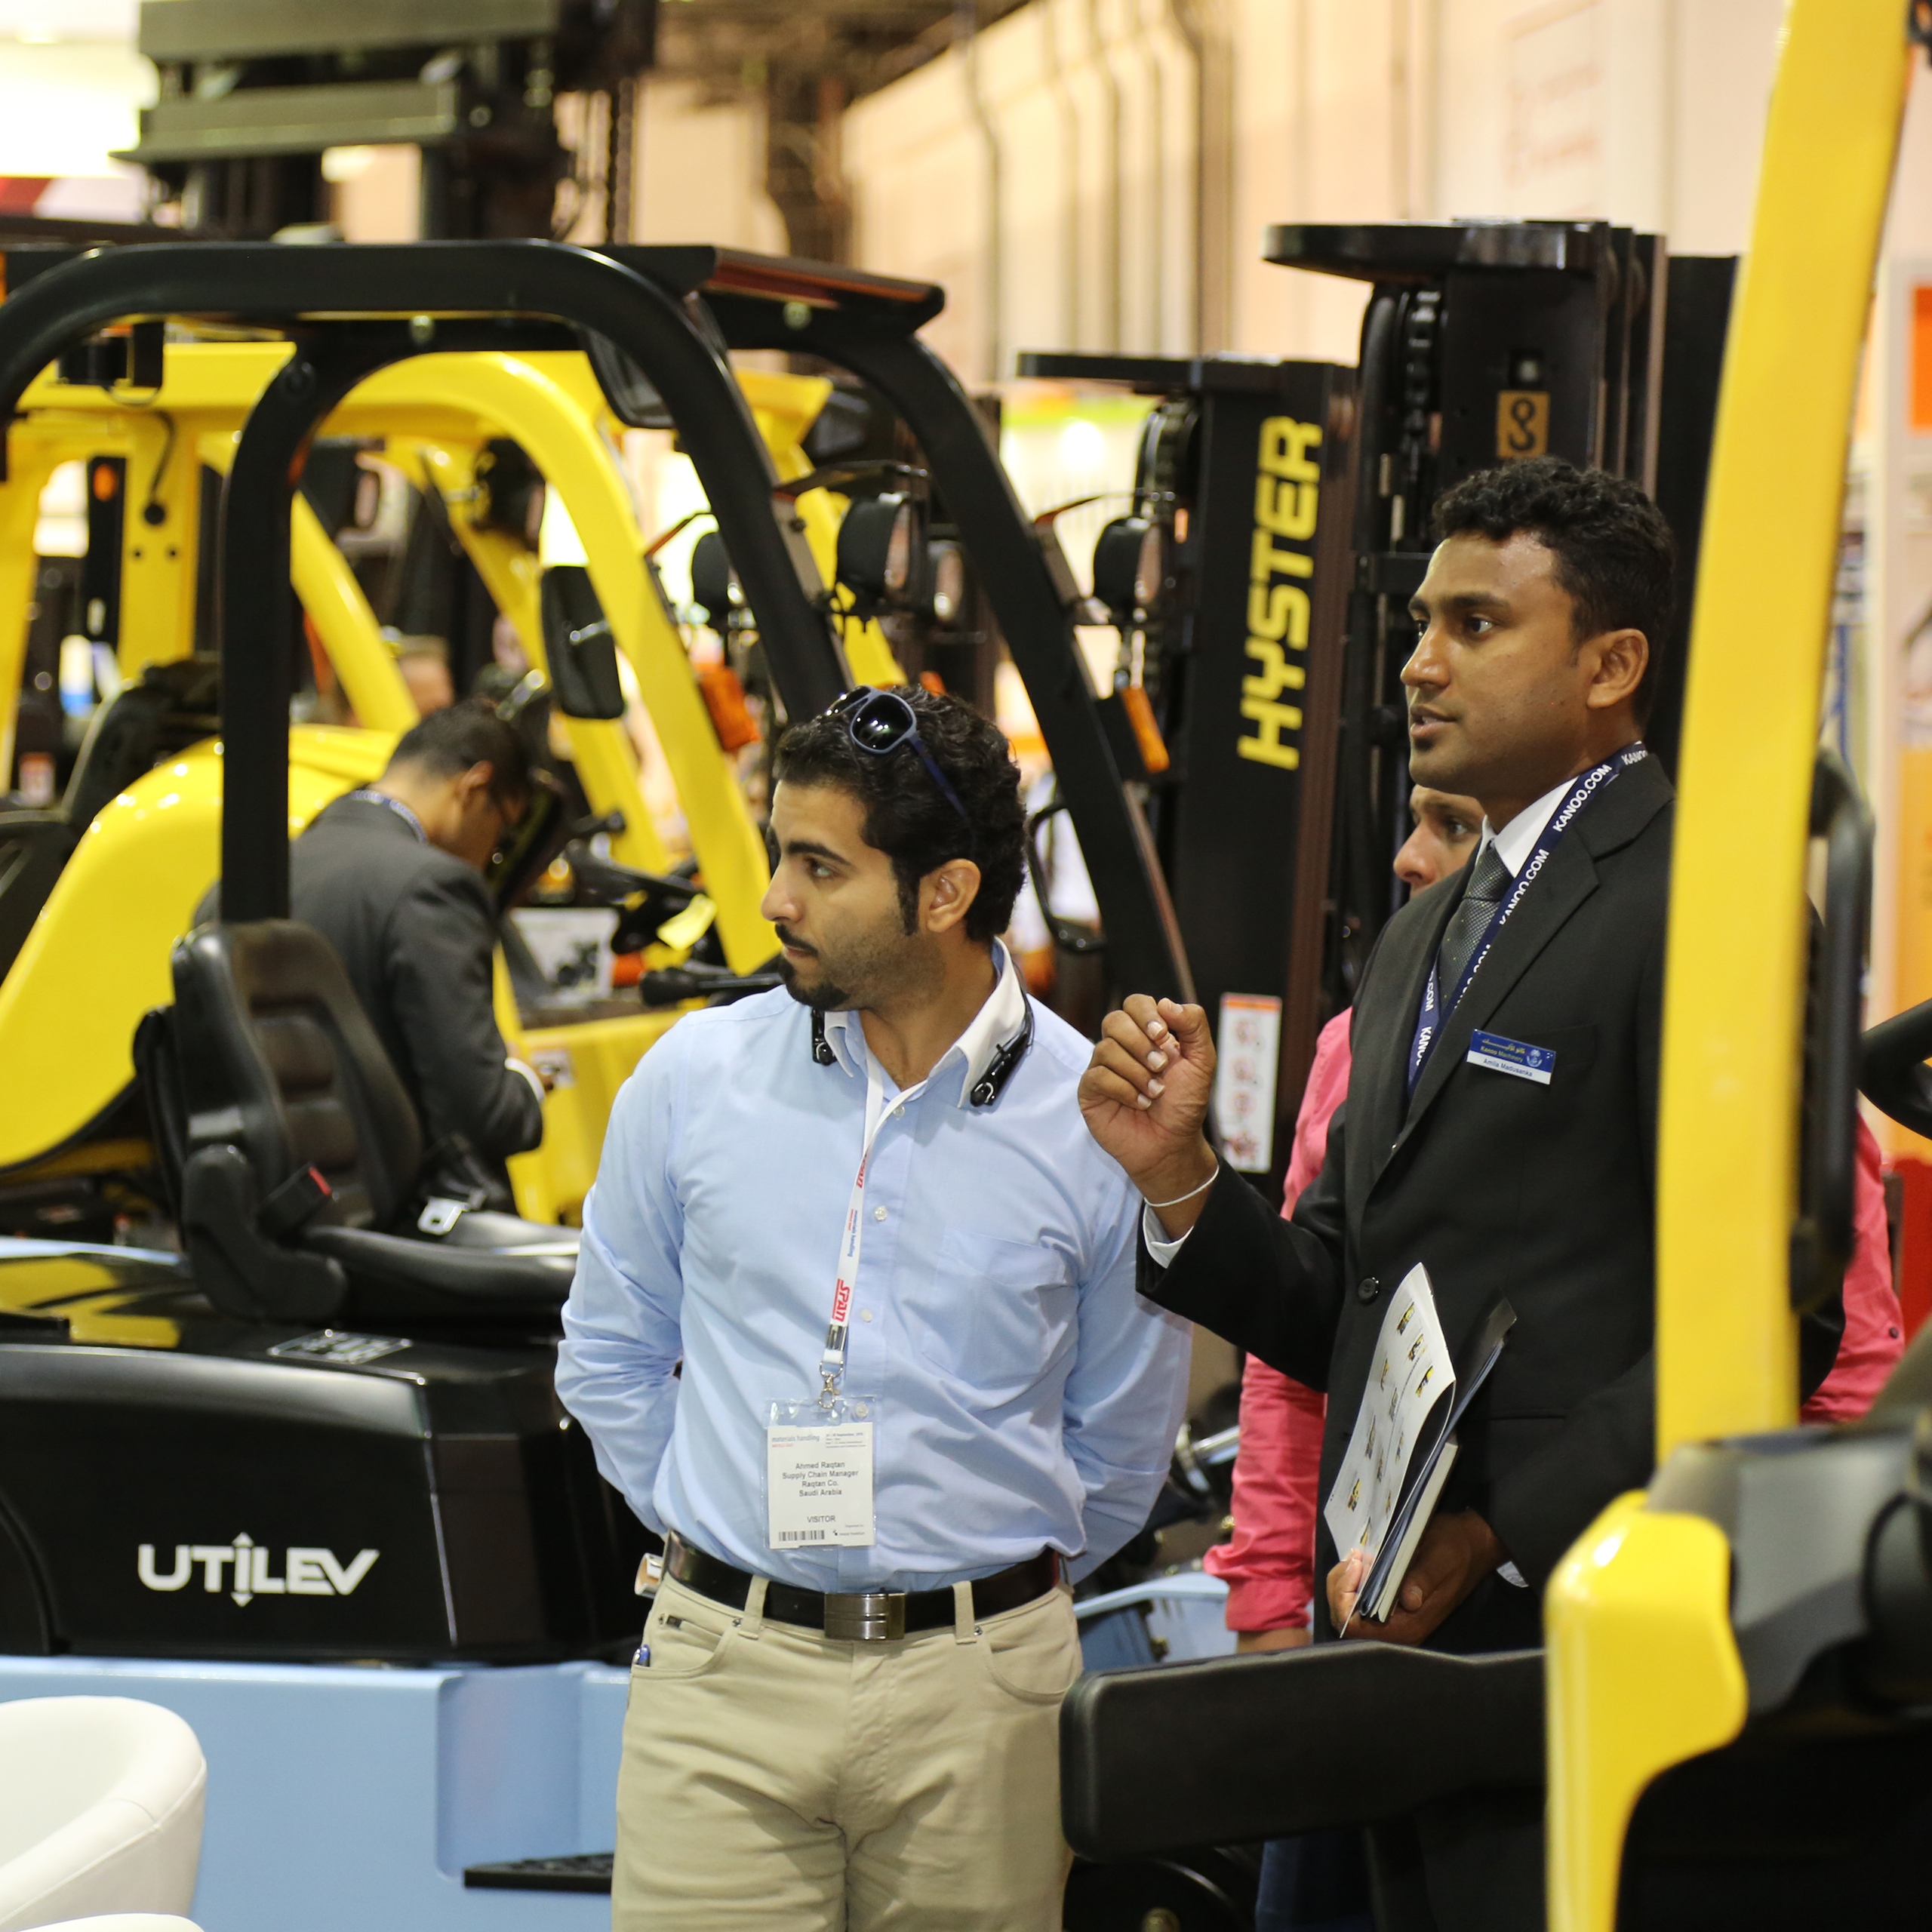 Materials Handling Middle East - Materials Handling Middle East 2015 concludes on all time high with 30 per cent surge in visitor numbers